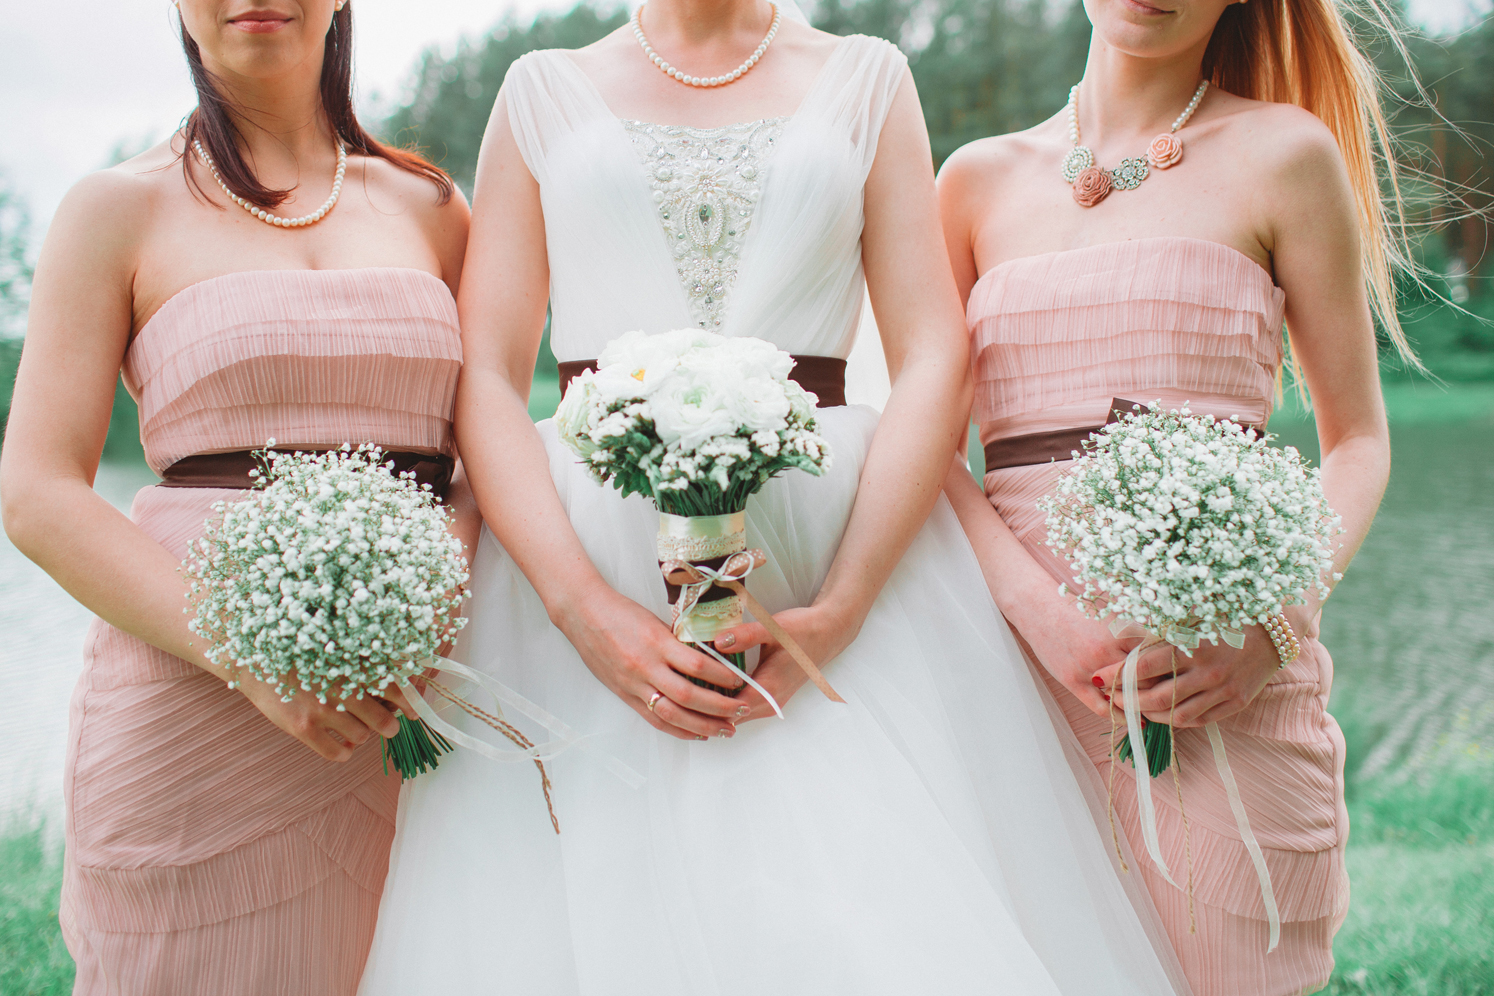 Wedding Etiquette: 5 Things You Should Never Ask Your Bridesmaids to Do